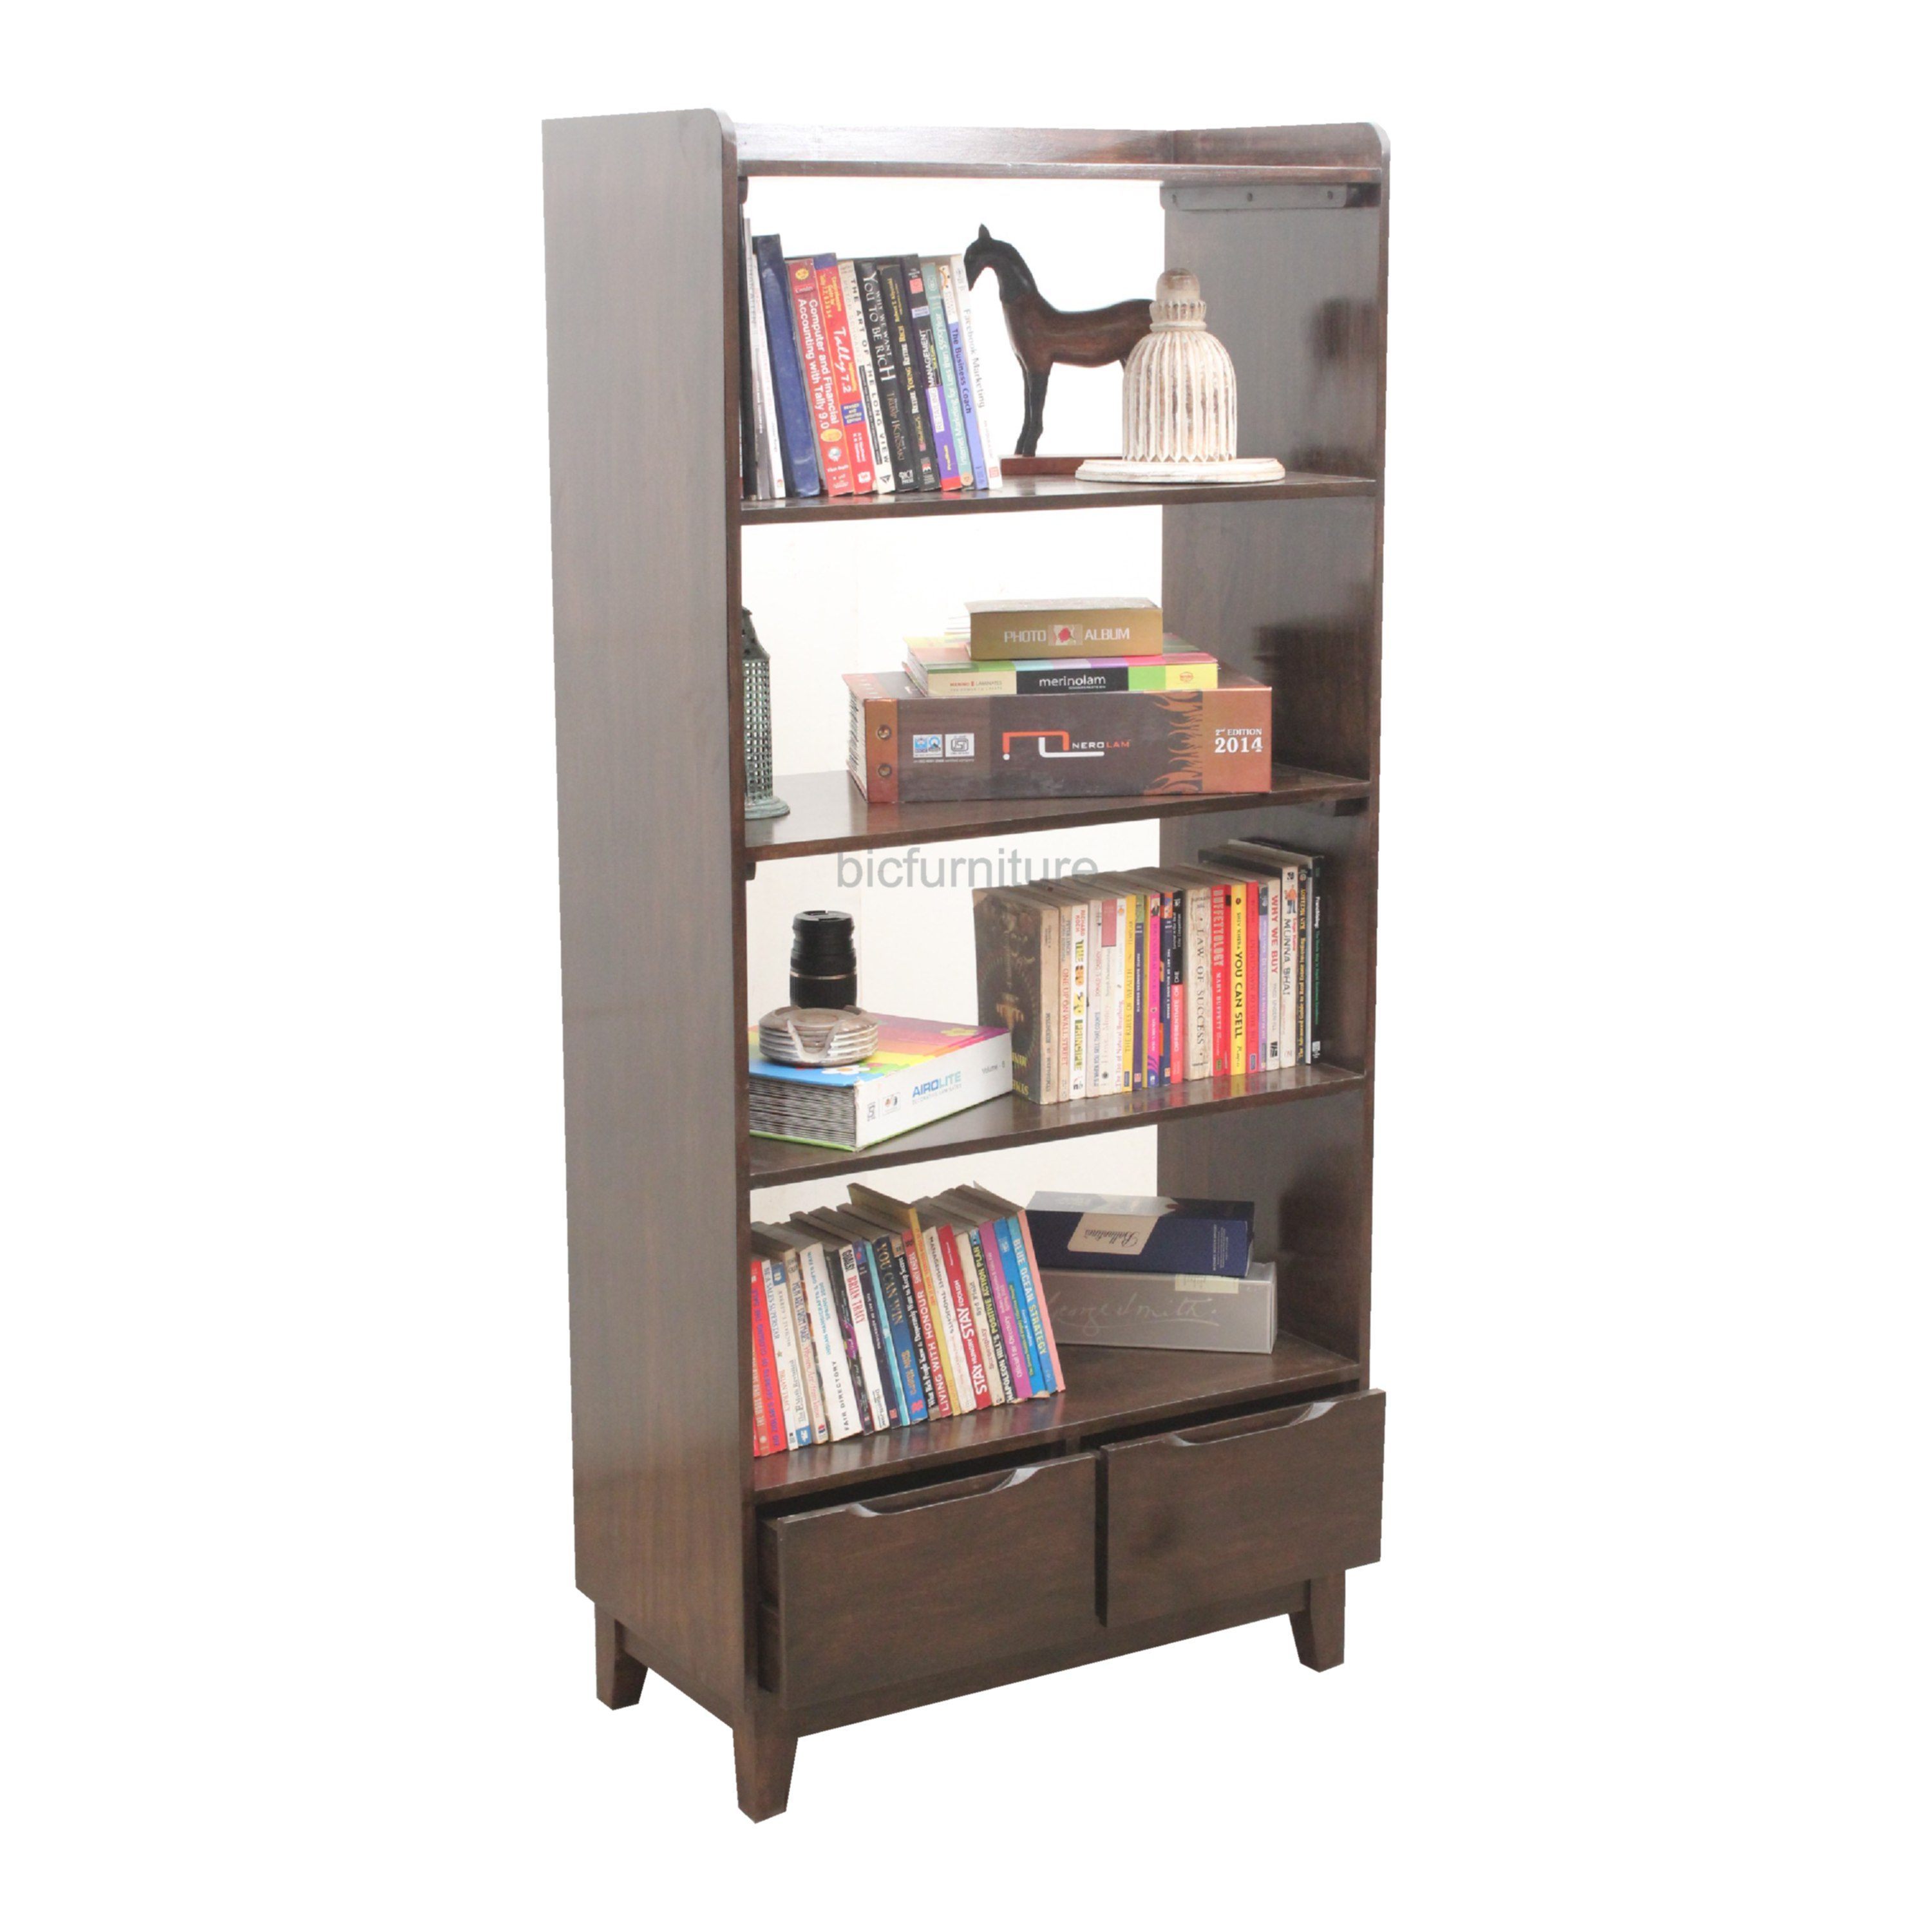 styles red corner bookshelf small simple ladder your black marrying bookcases modern design bookcase